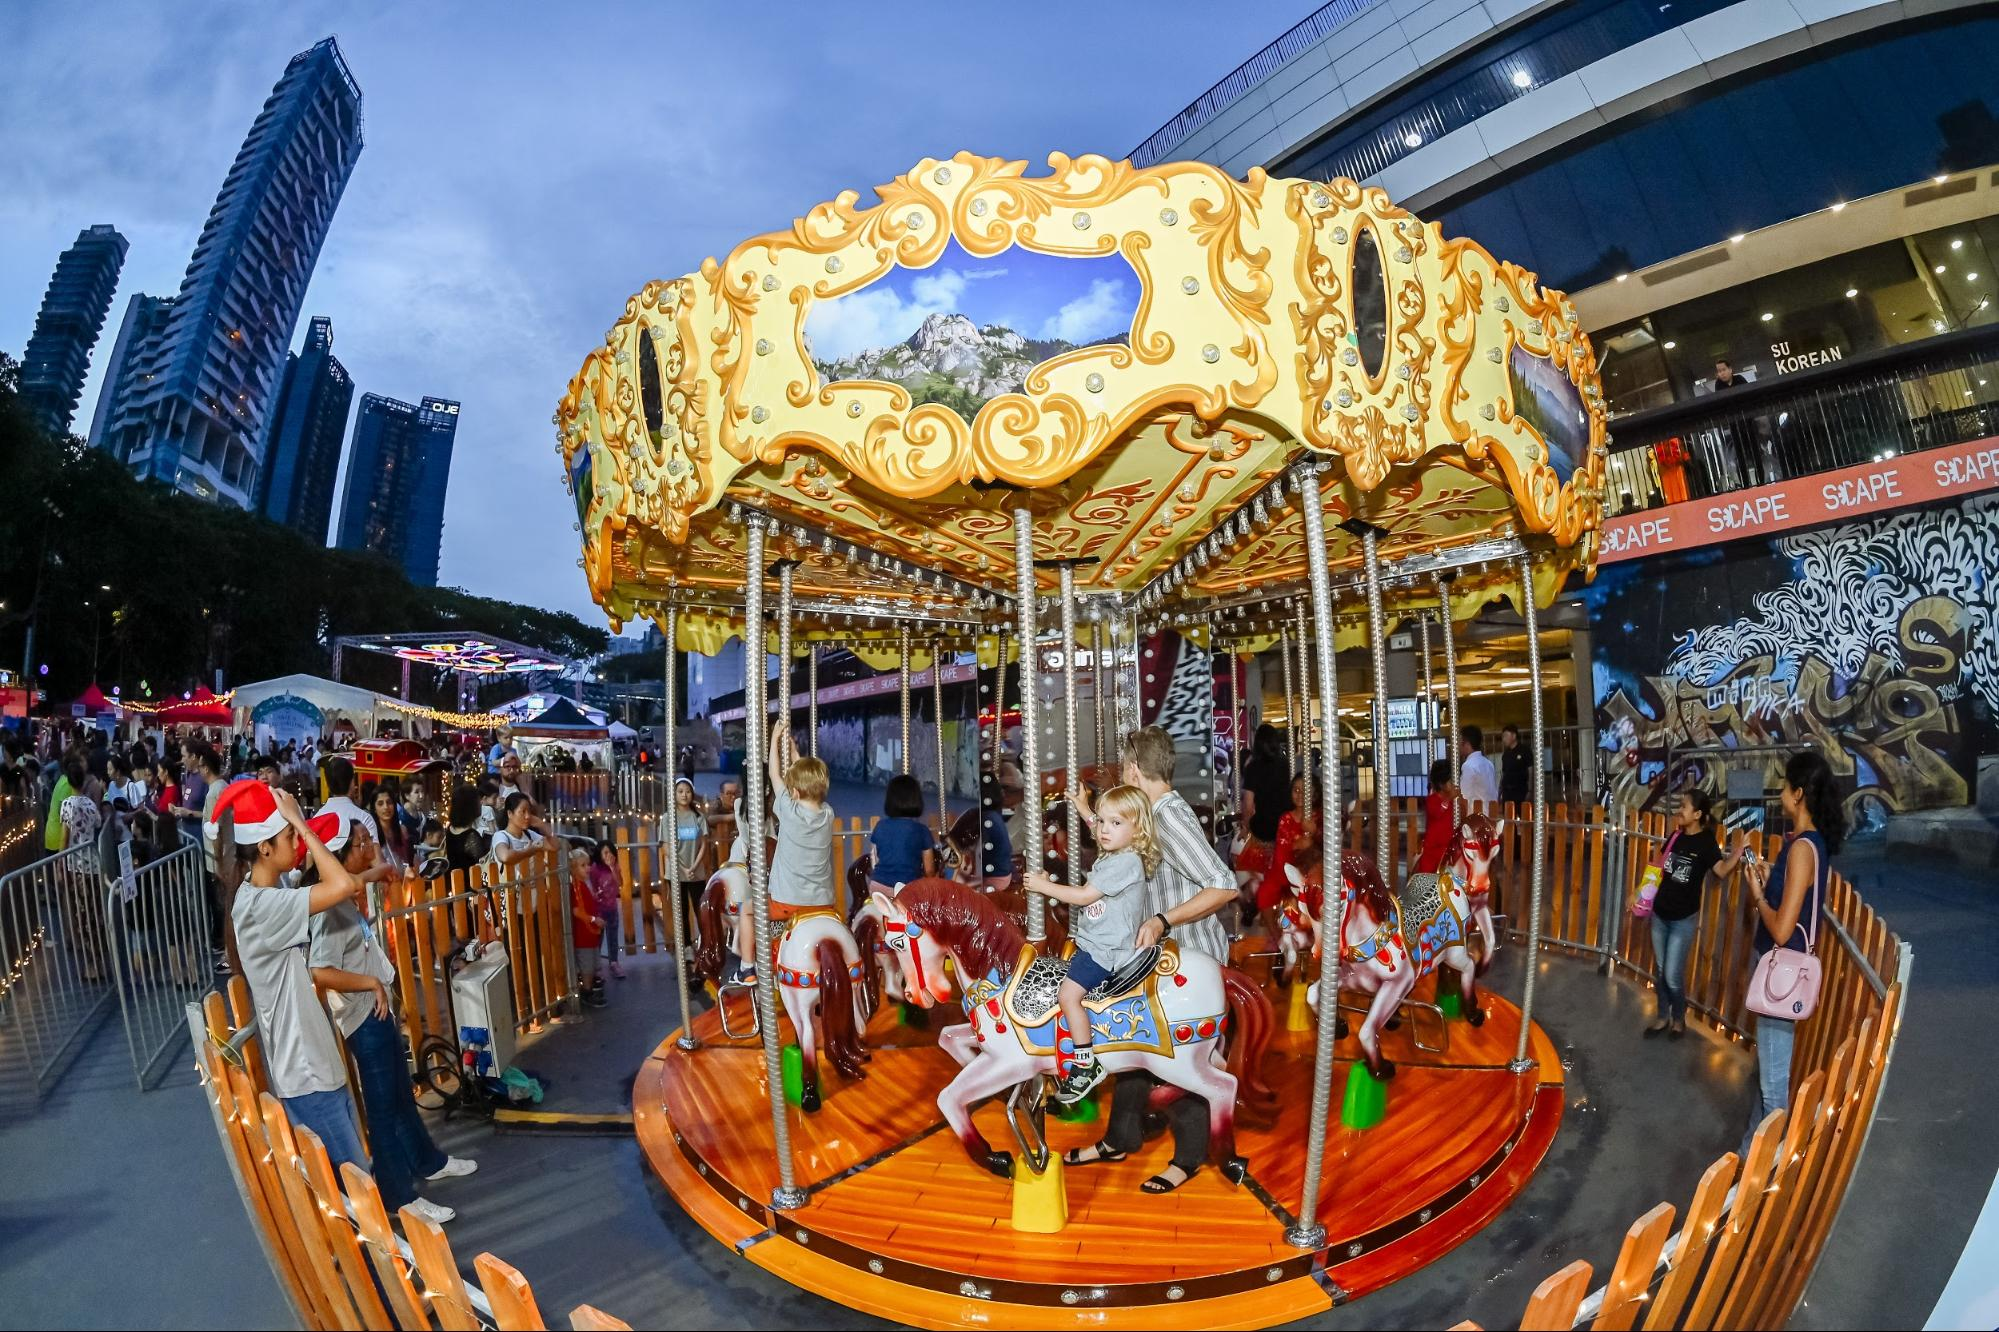 Carousel Ride Orchard Road Christmas Village 2019